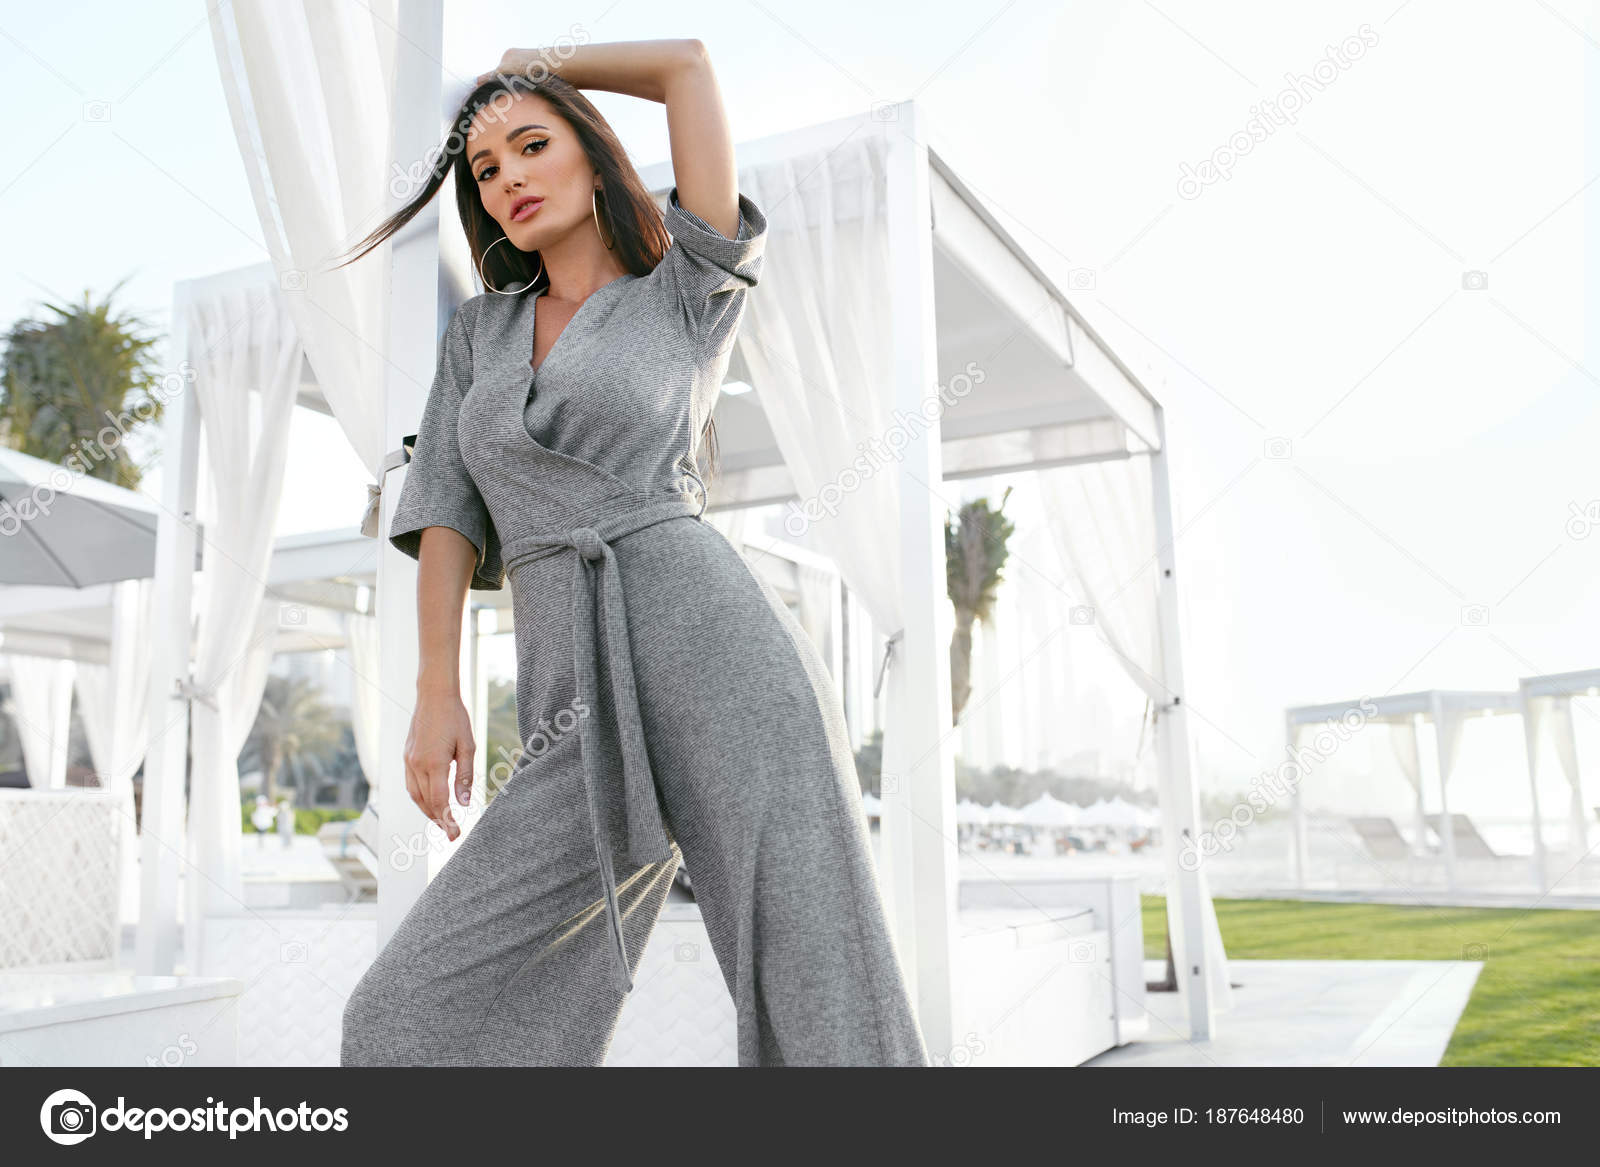 da3702b53ff8 Women Fashion. Woman In Fashionable Clothes. Portrait Of Gorgeous Sexy  Female Model In Stylish Jumpsuit Relaxing Outdoors At Luxury Resort.